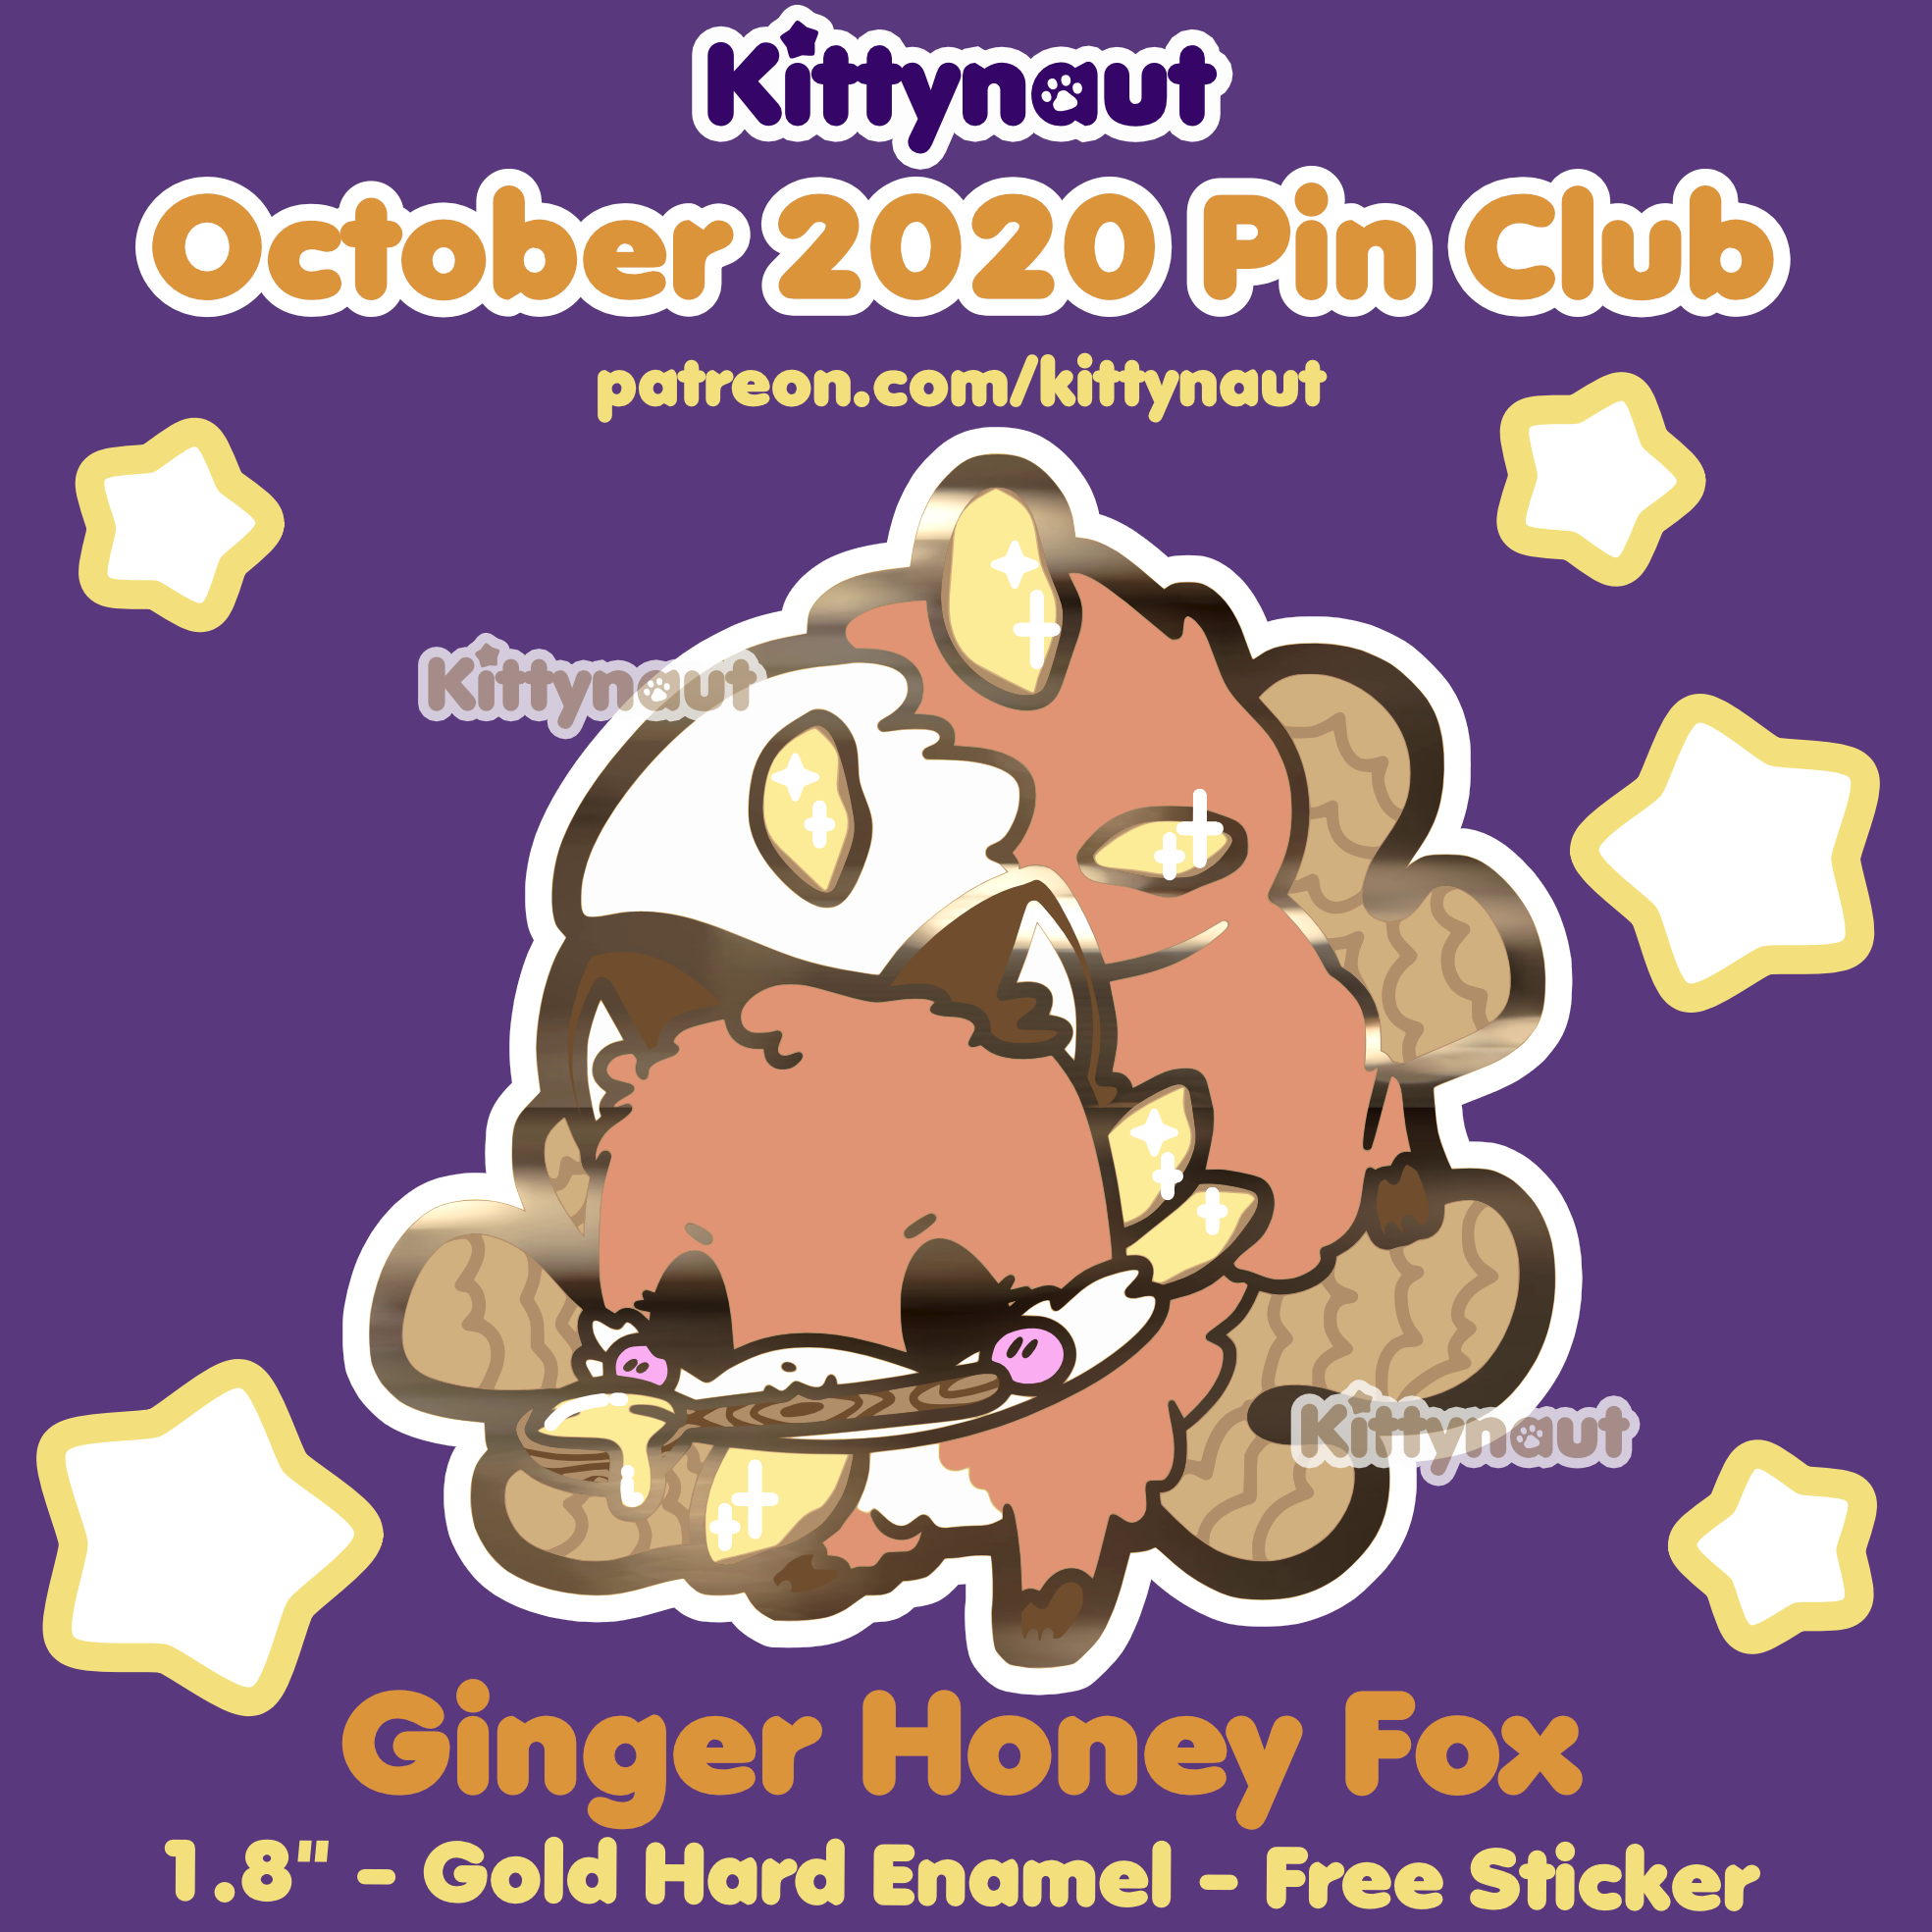 Secret Shop - Oct 2020 - Ginger Honey Fox